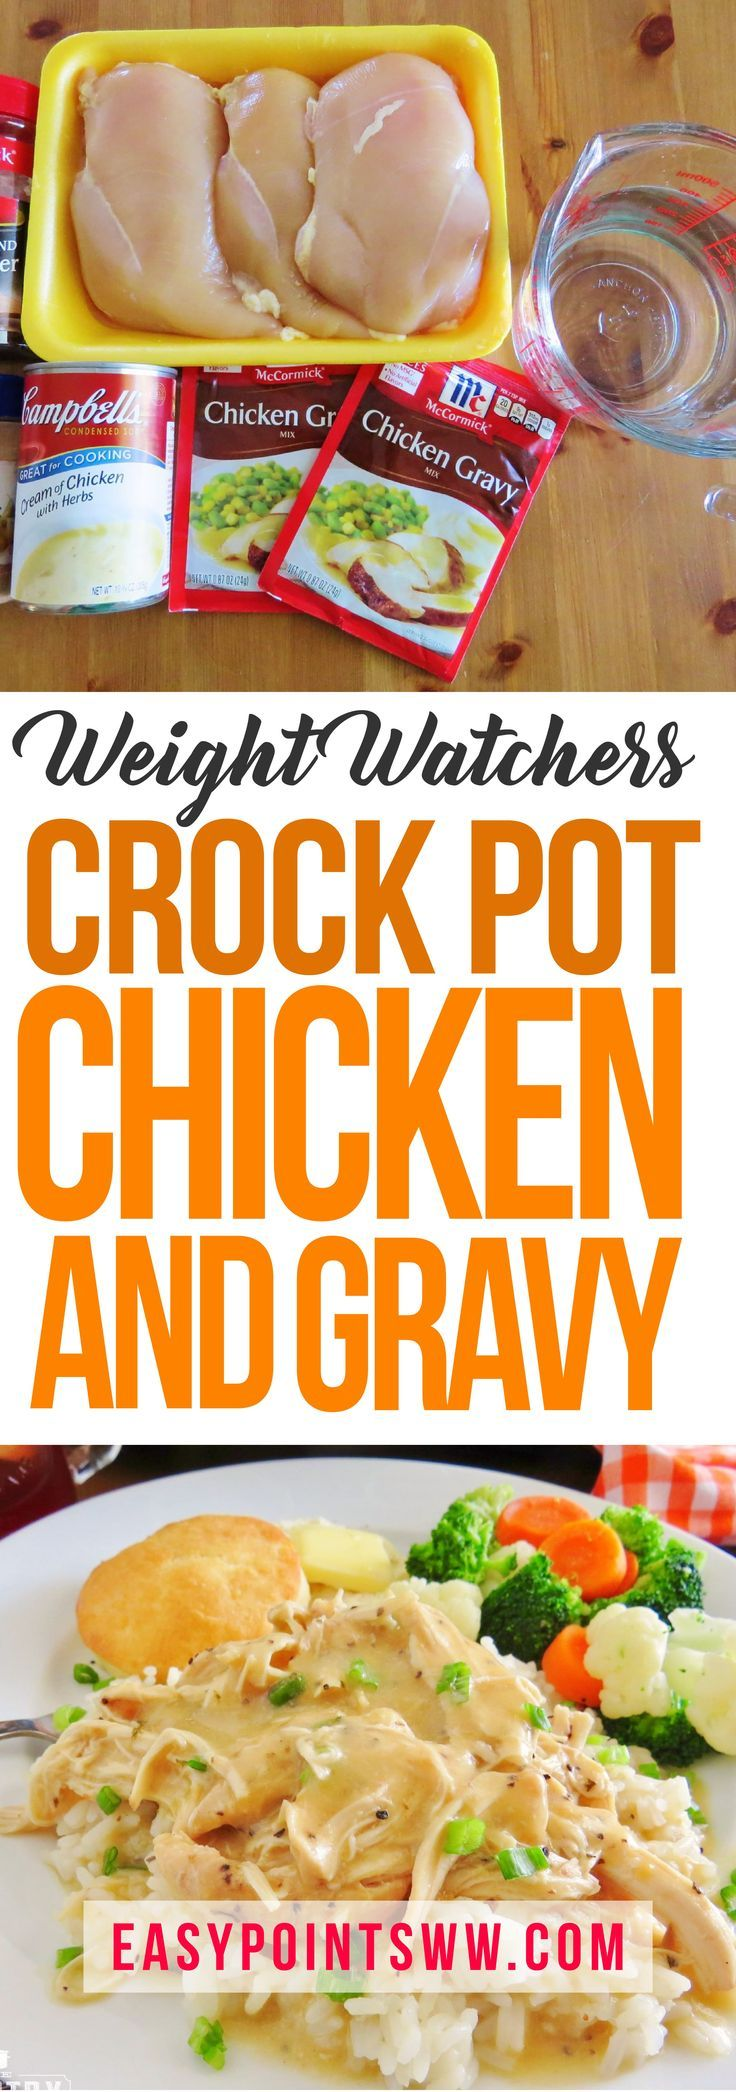 Weight Watchers Slow Cooker Chicken and Gravy ♥️ 4SP